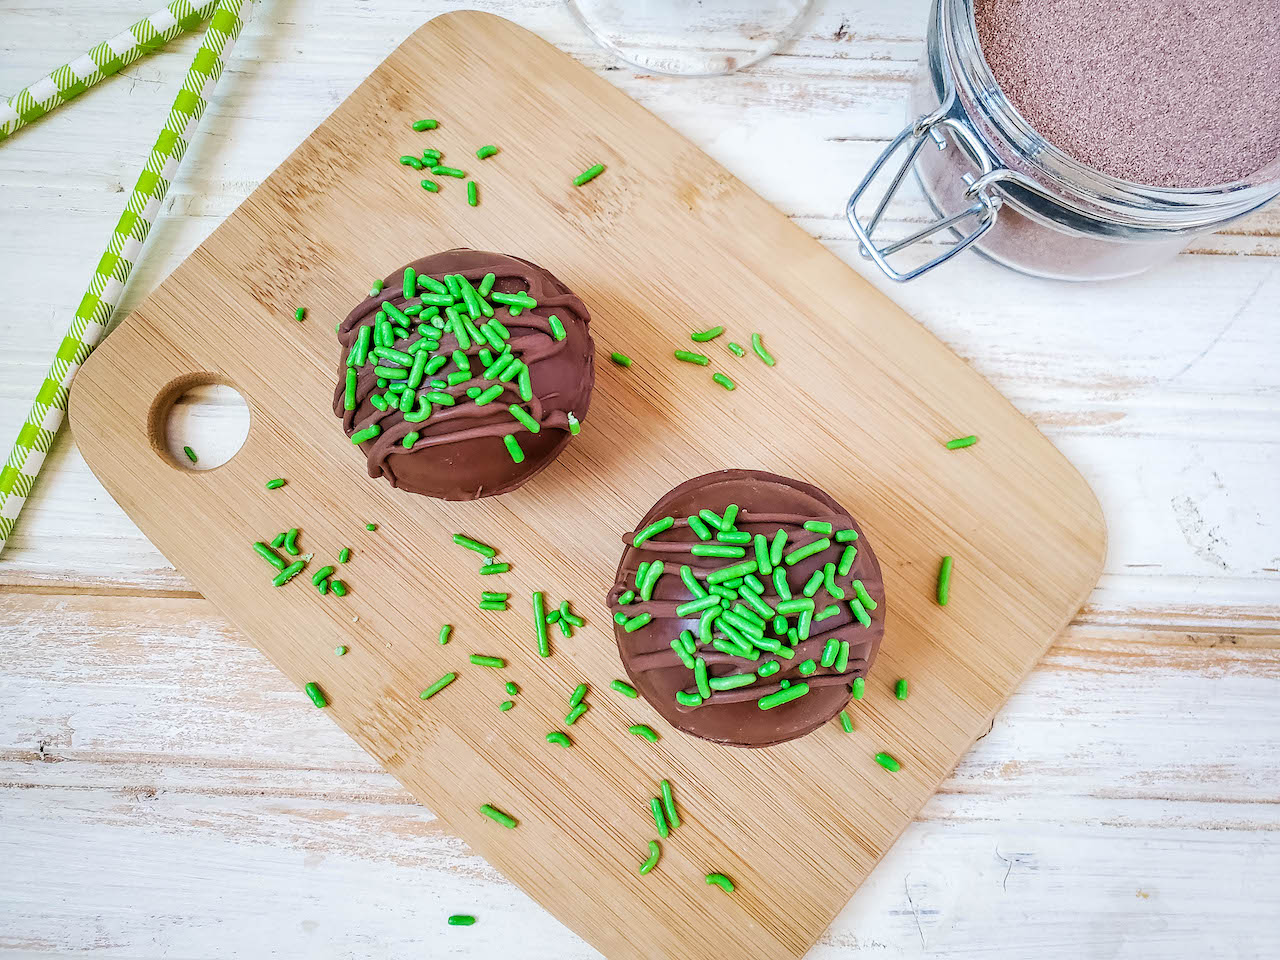 two cocoa bombs sitting on a wooden board covered with green sprinkles. Green stripped straws and a jar of cocoa mix in the background